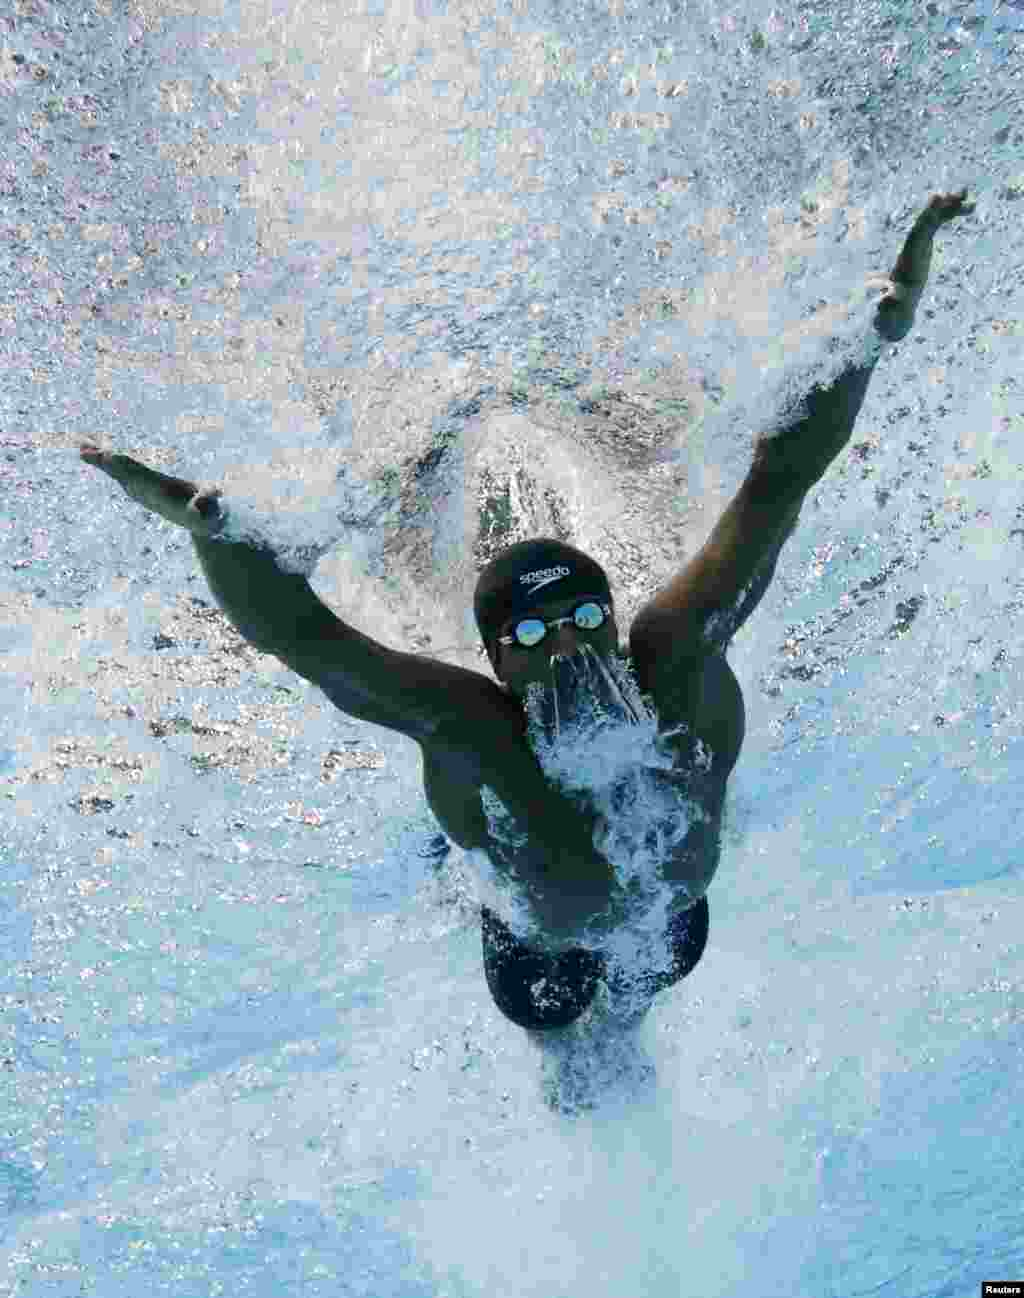 Issa Abdulla Hemed Mohamed of Kenya swims in the men's 100m Butterfly heats during the 2014 Commonwealth Games in Glasgow, Scotland.